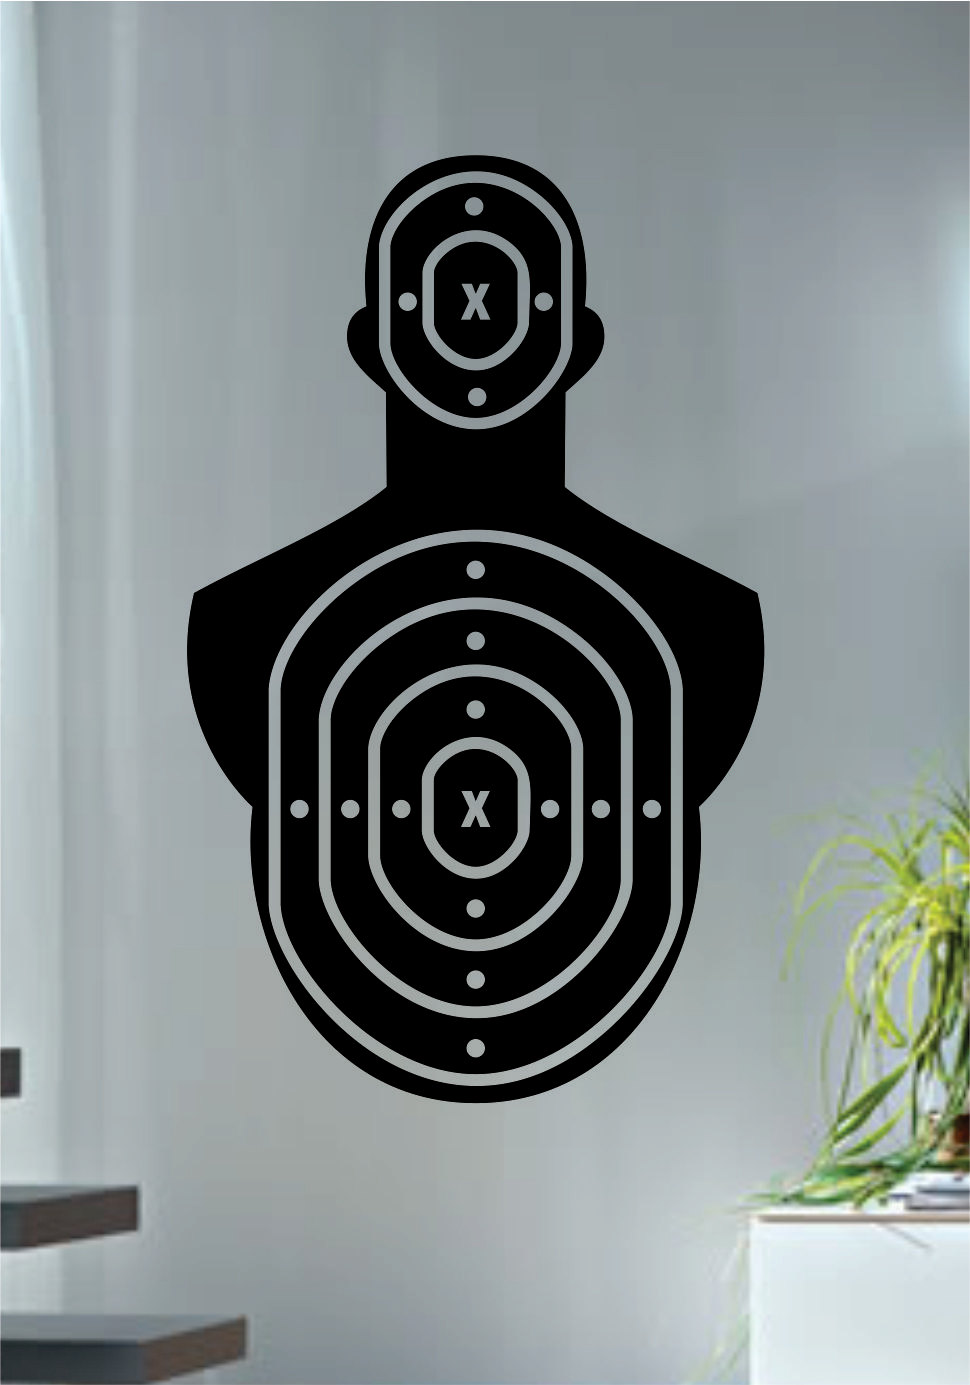 Shooting Range Wall Decal Special Design Target Version Cool Wall Stickers  Gun Art Mural Removable Waterproof Home Decor